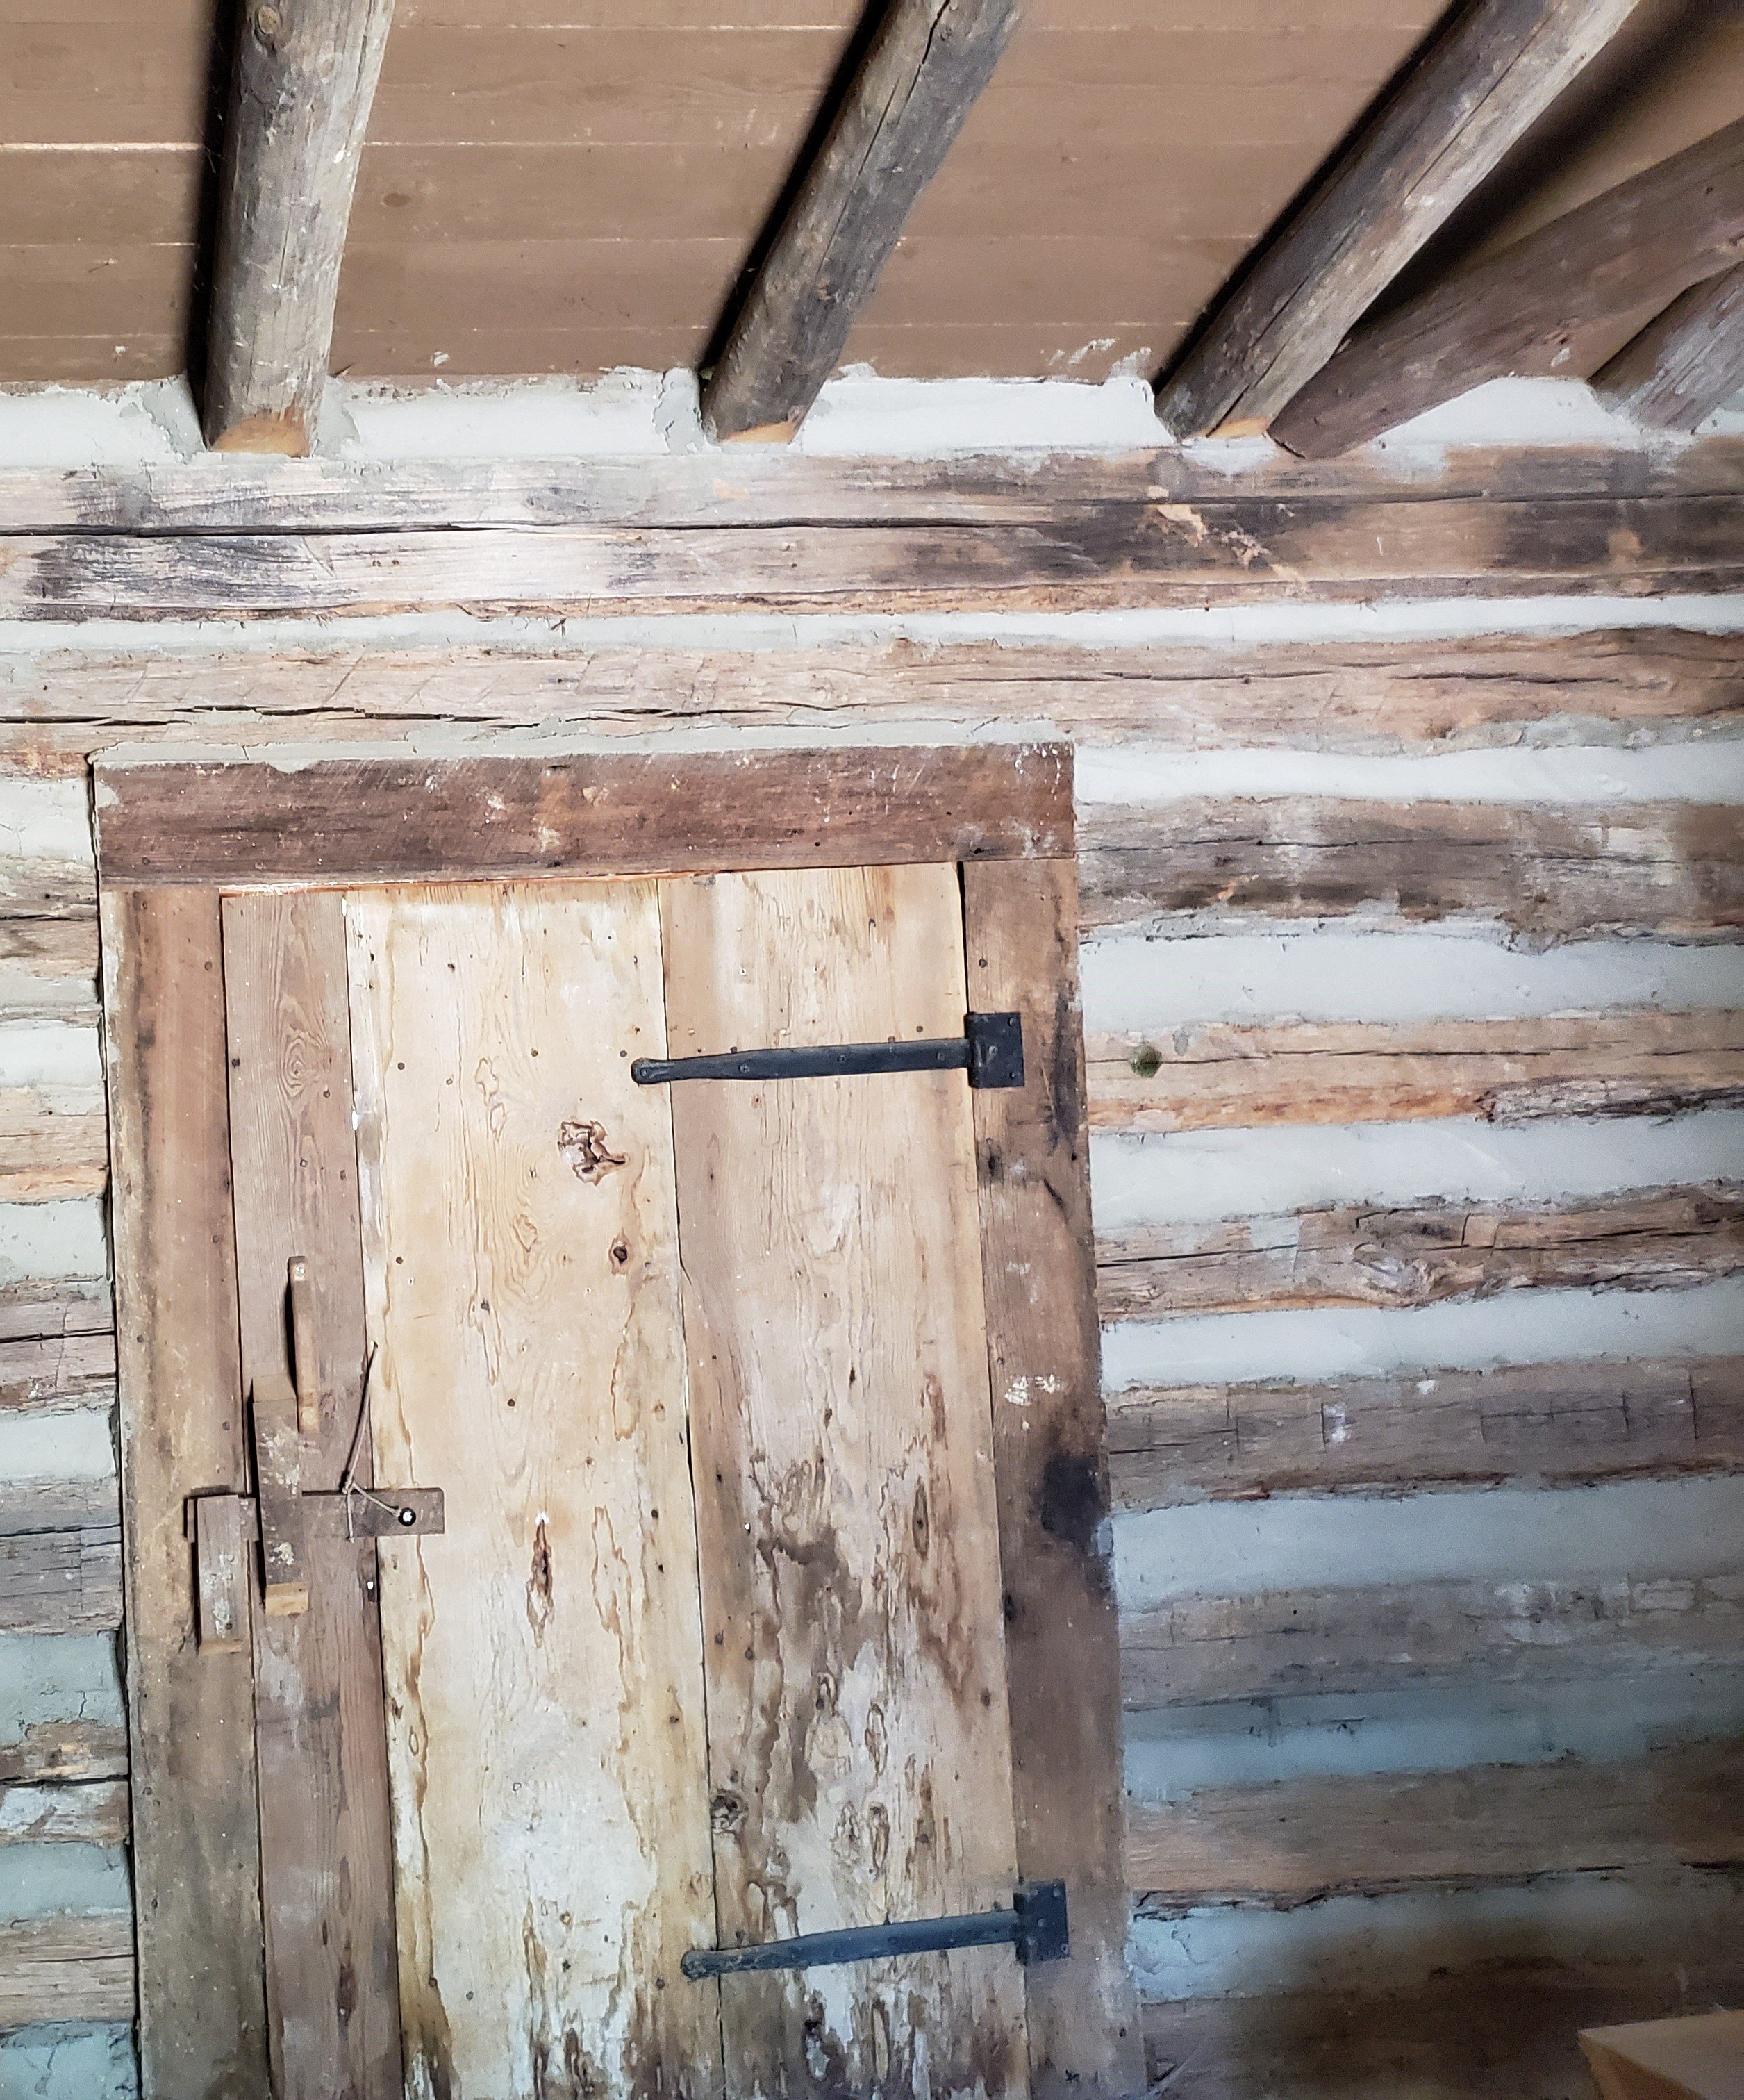 This is a view of the schoolhouse door from the inside. Windows were open holes cut into the logs to provide light and ventilation during warm weather but there was no glass or closures to keep the outside elements out.